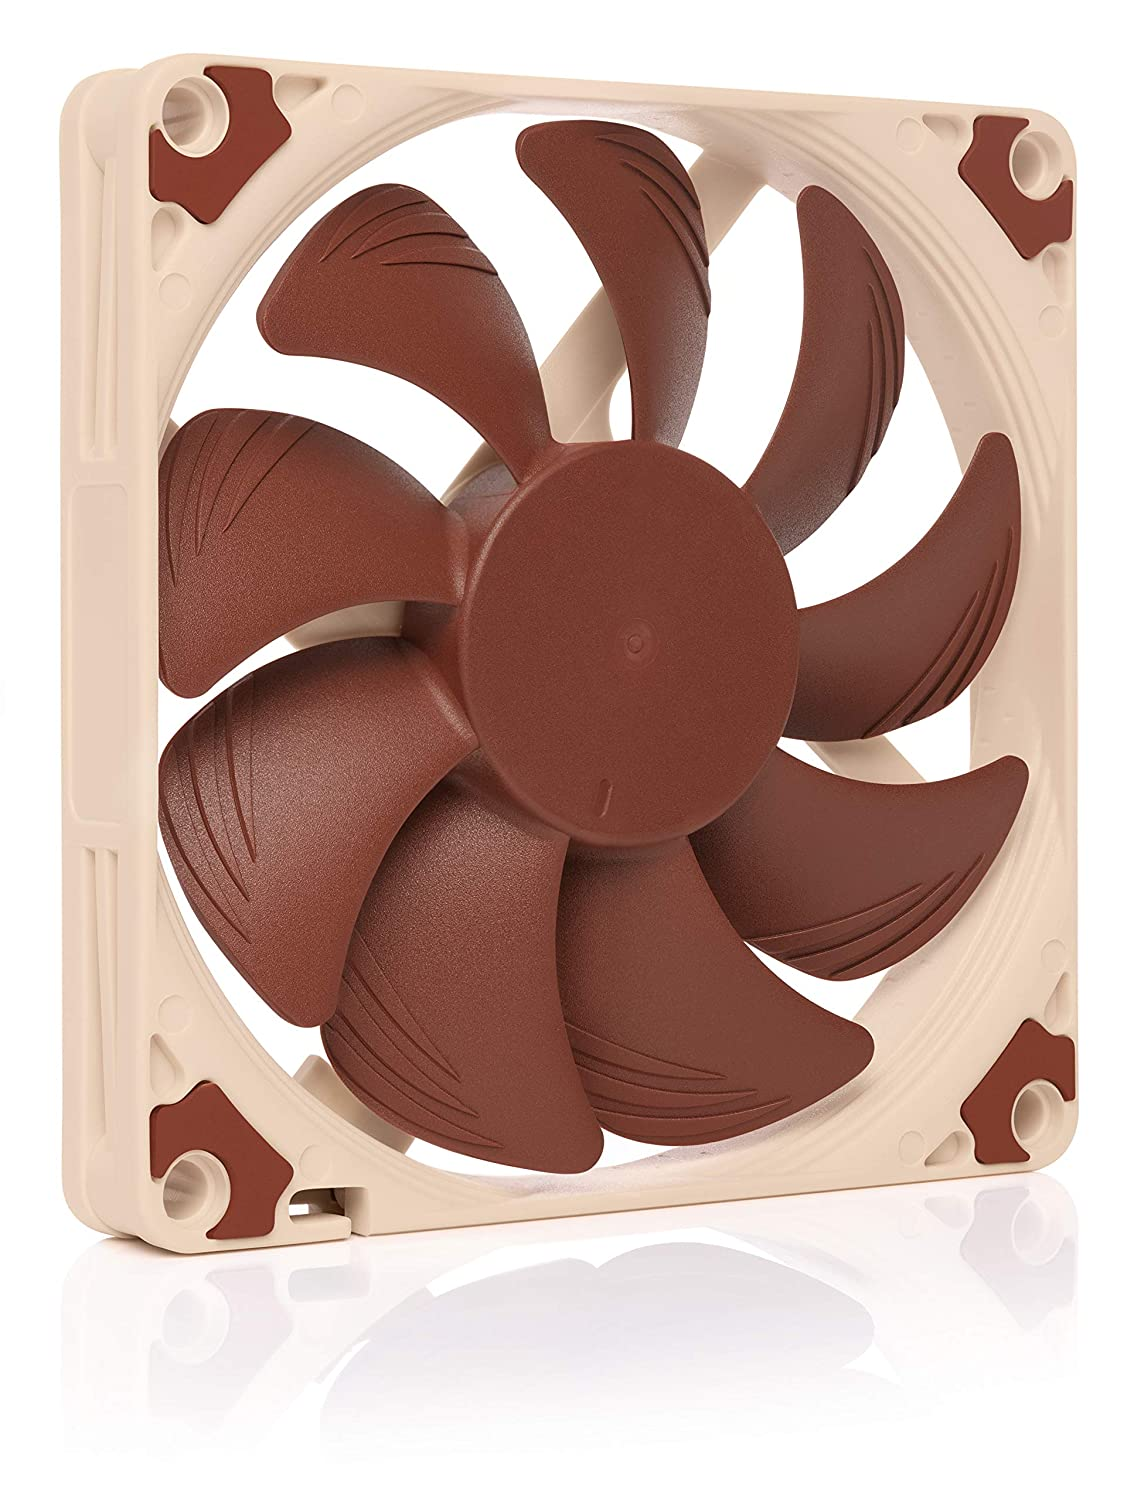 Noctua NF-A9x14 PWM, Premium Quiet Fan, 4-Pin (92x14mm, Brown)